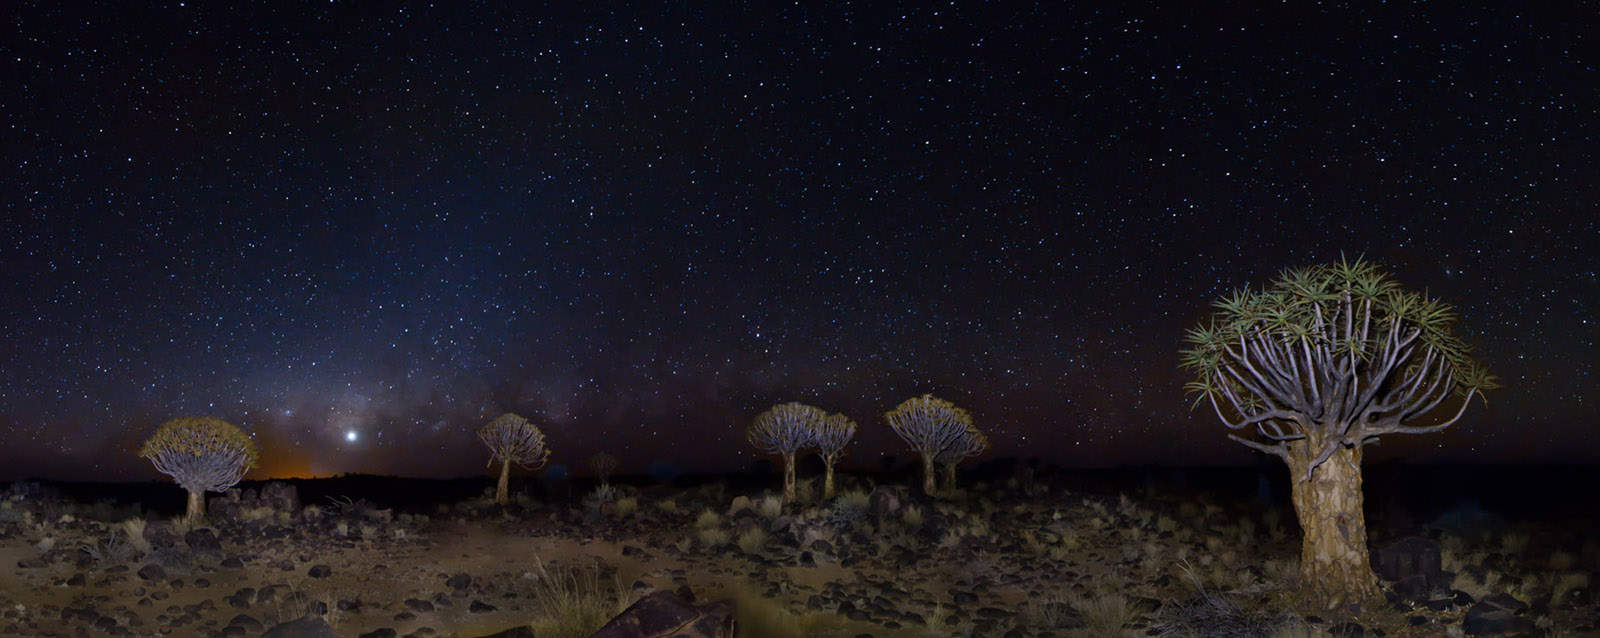 Namibia Landscape Photography5 - Capturing Space: Our Photography Workshop in Namibia